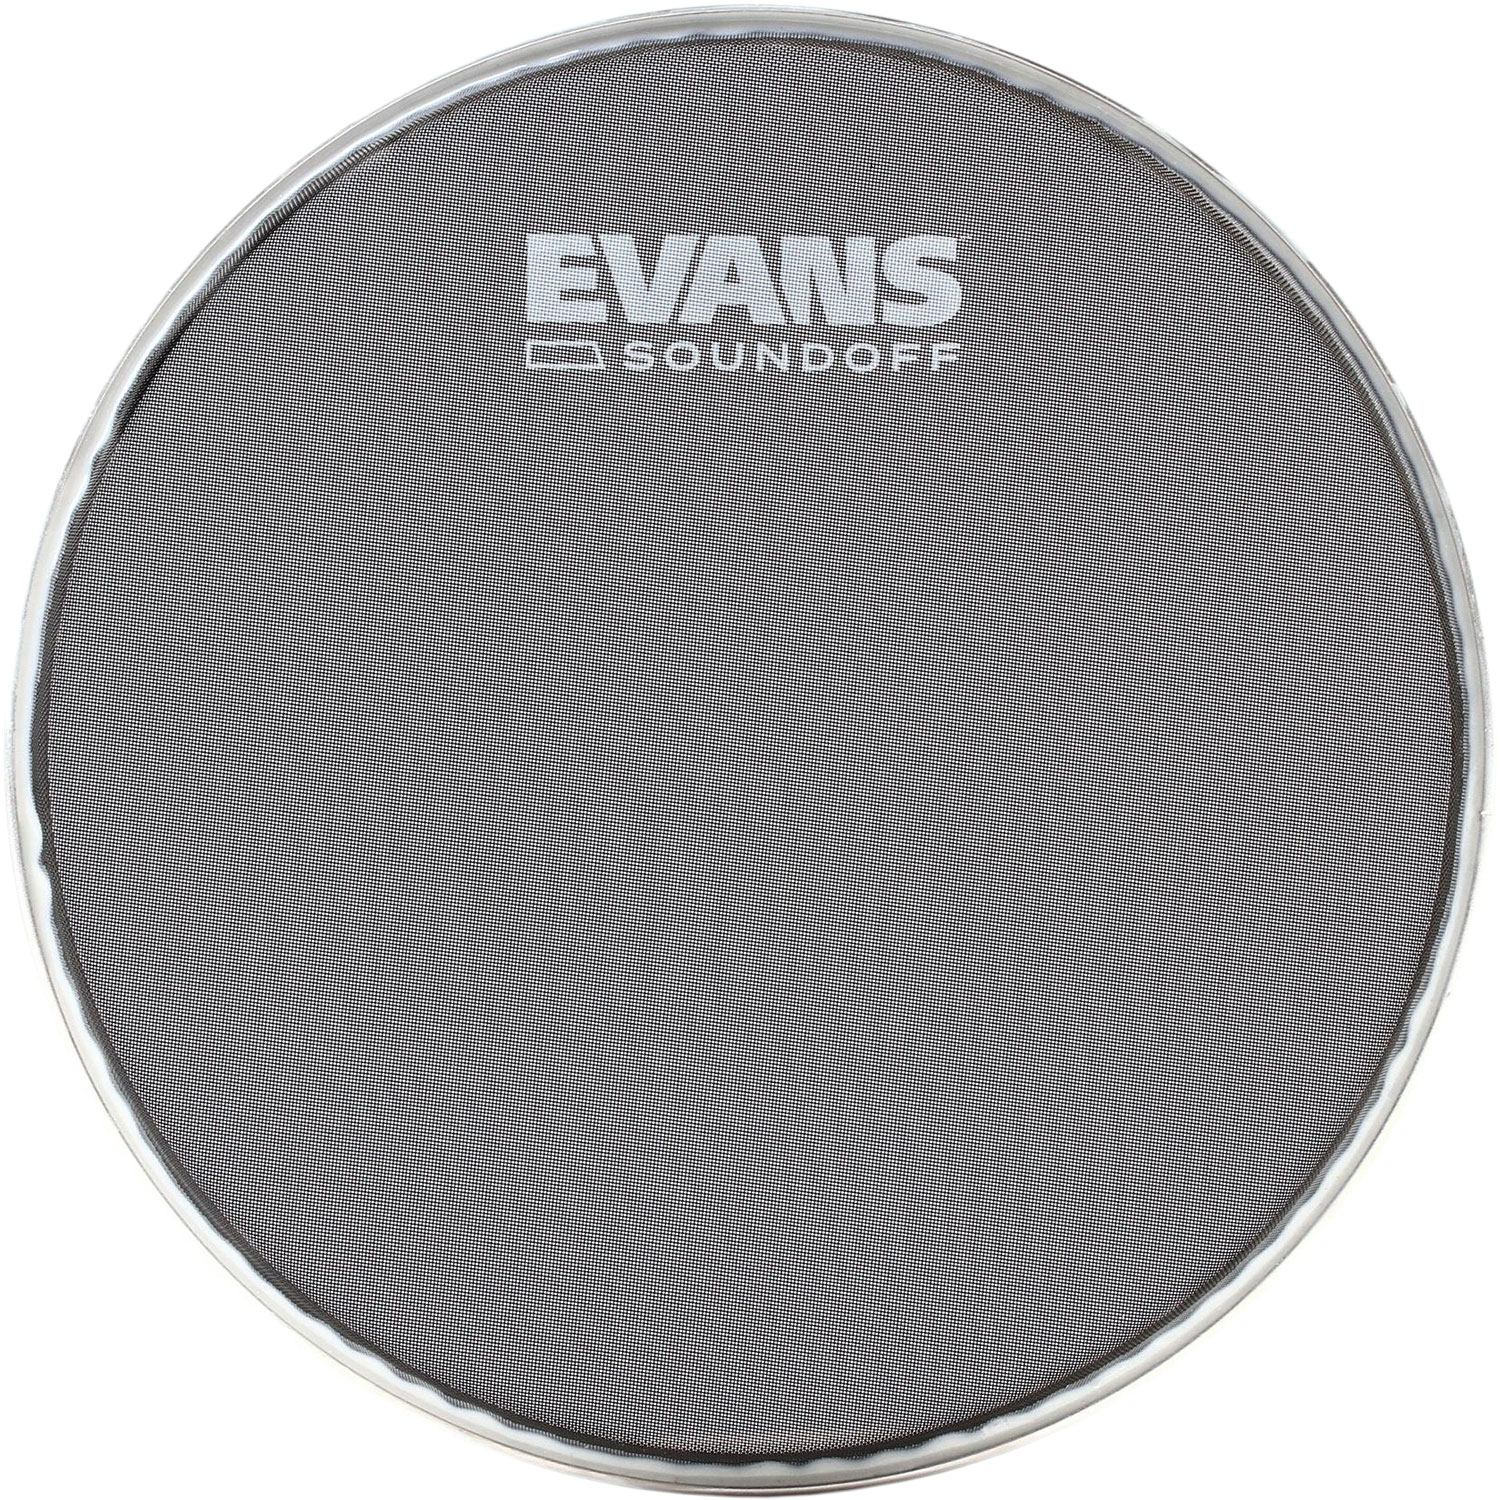 "Evans 12"" SoundOff Mesh Drum Head"